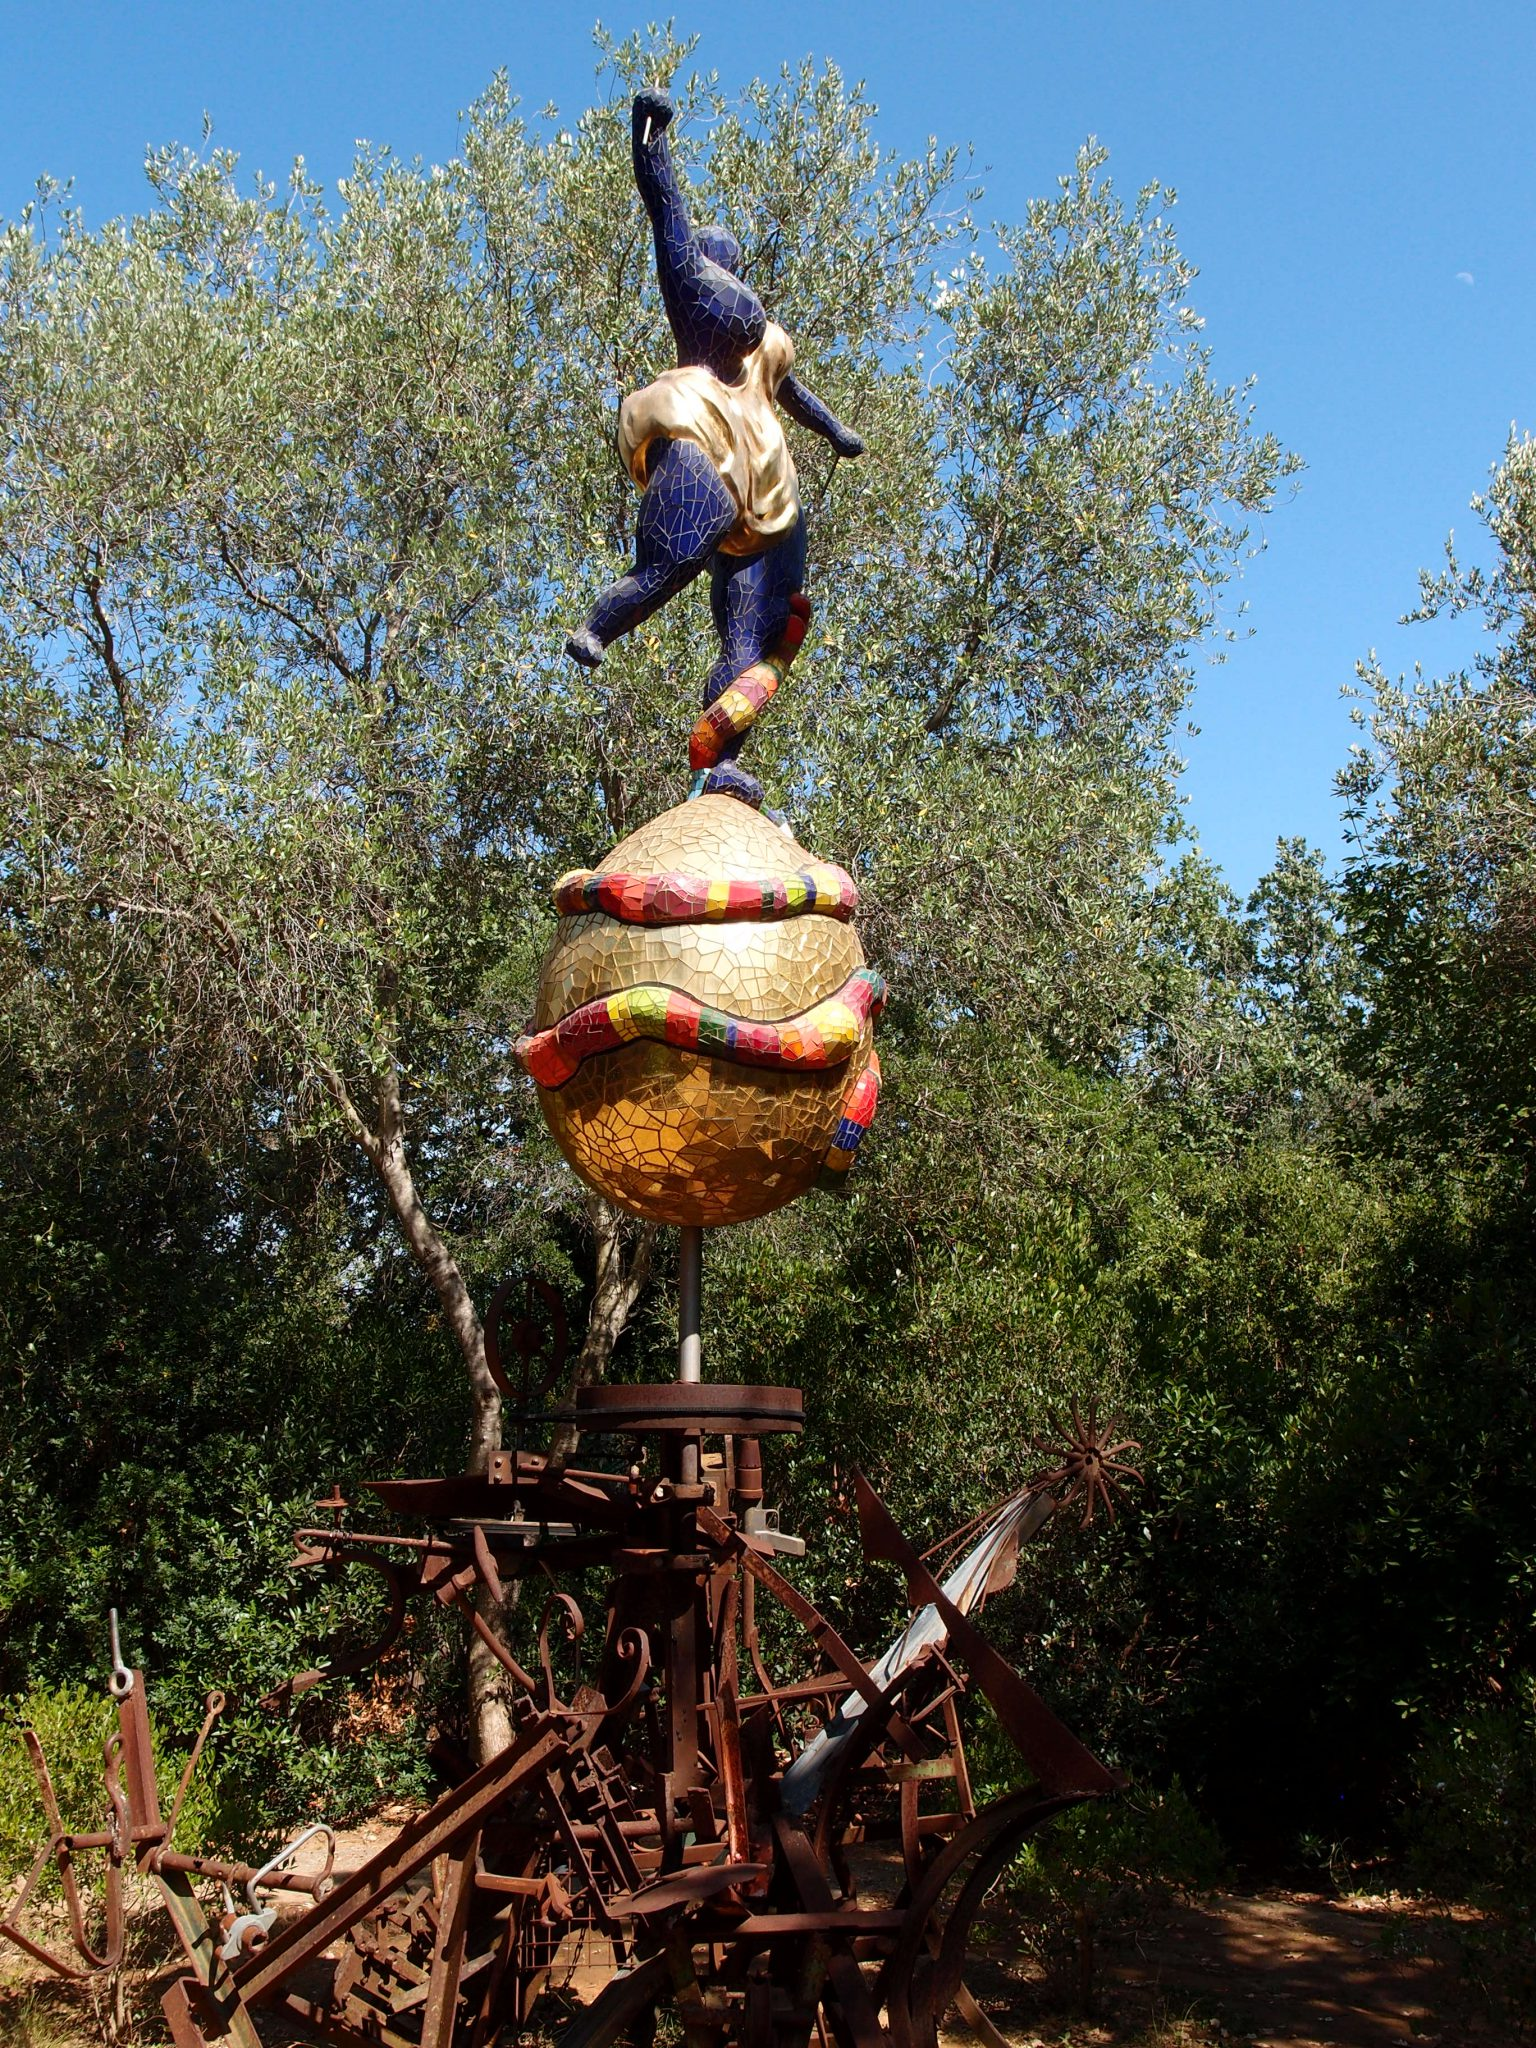 The World. Niki's sculpture balances atop a metal assemblage, made by Jean Tinguely.